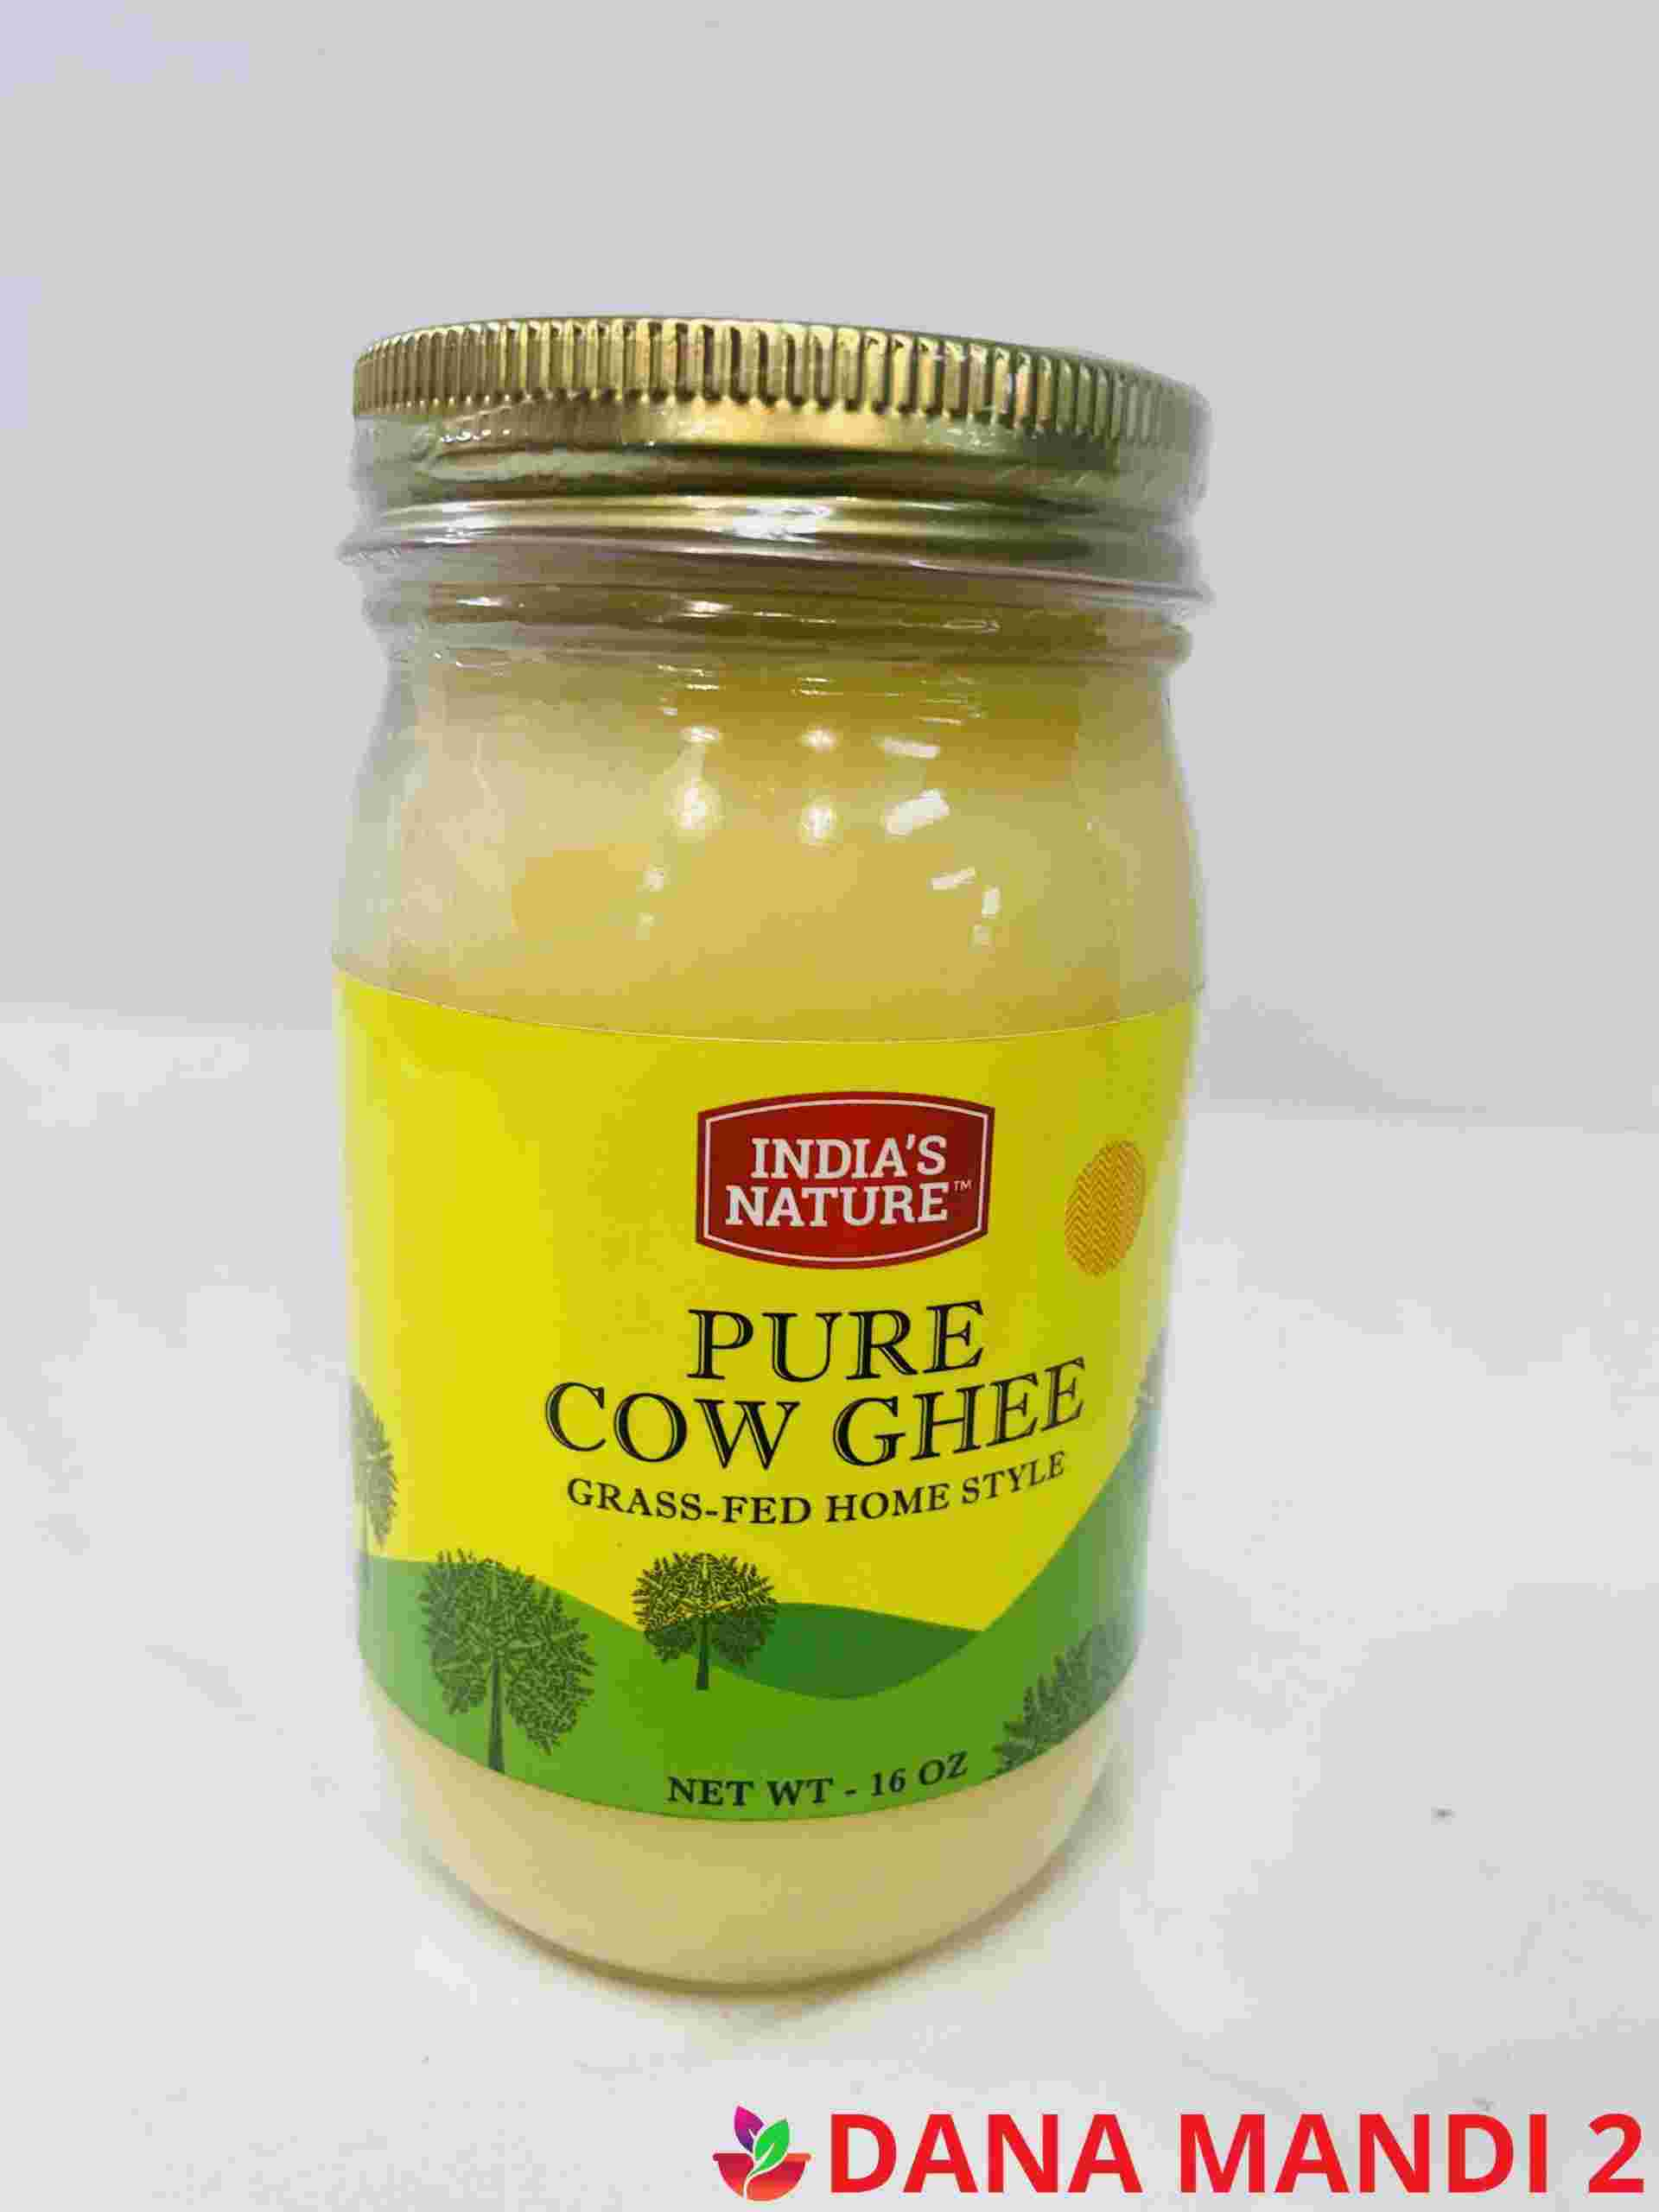 Indian'S Nature Pure Cow Ghee